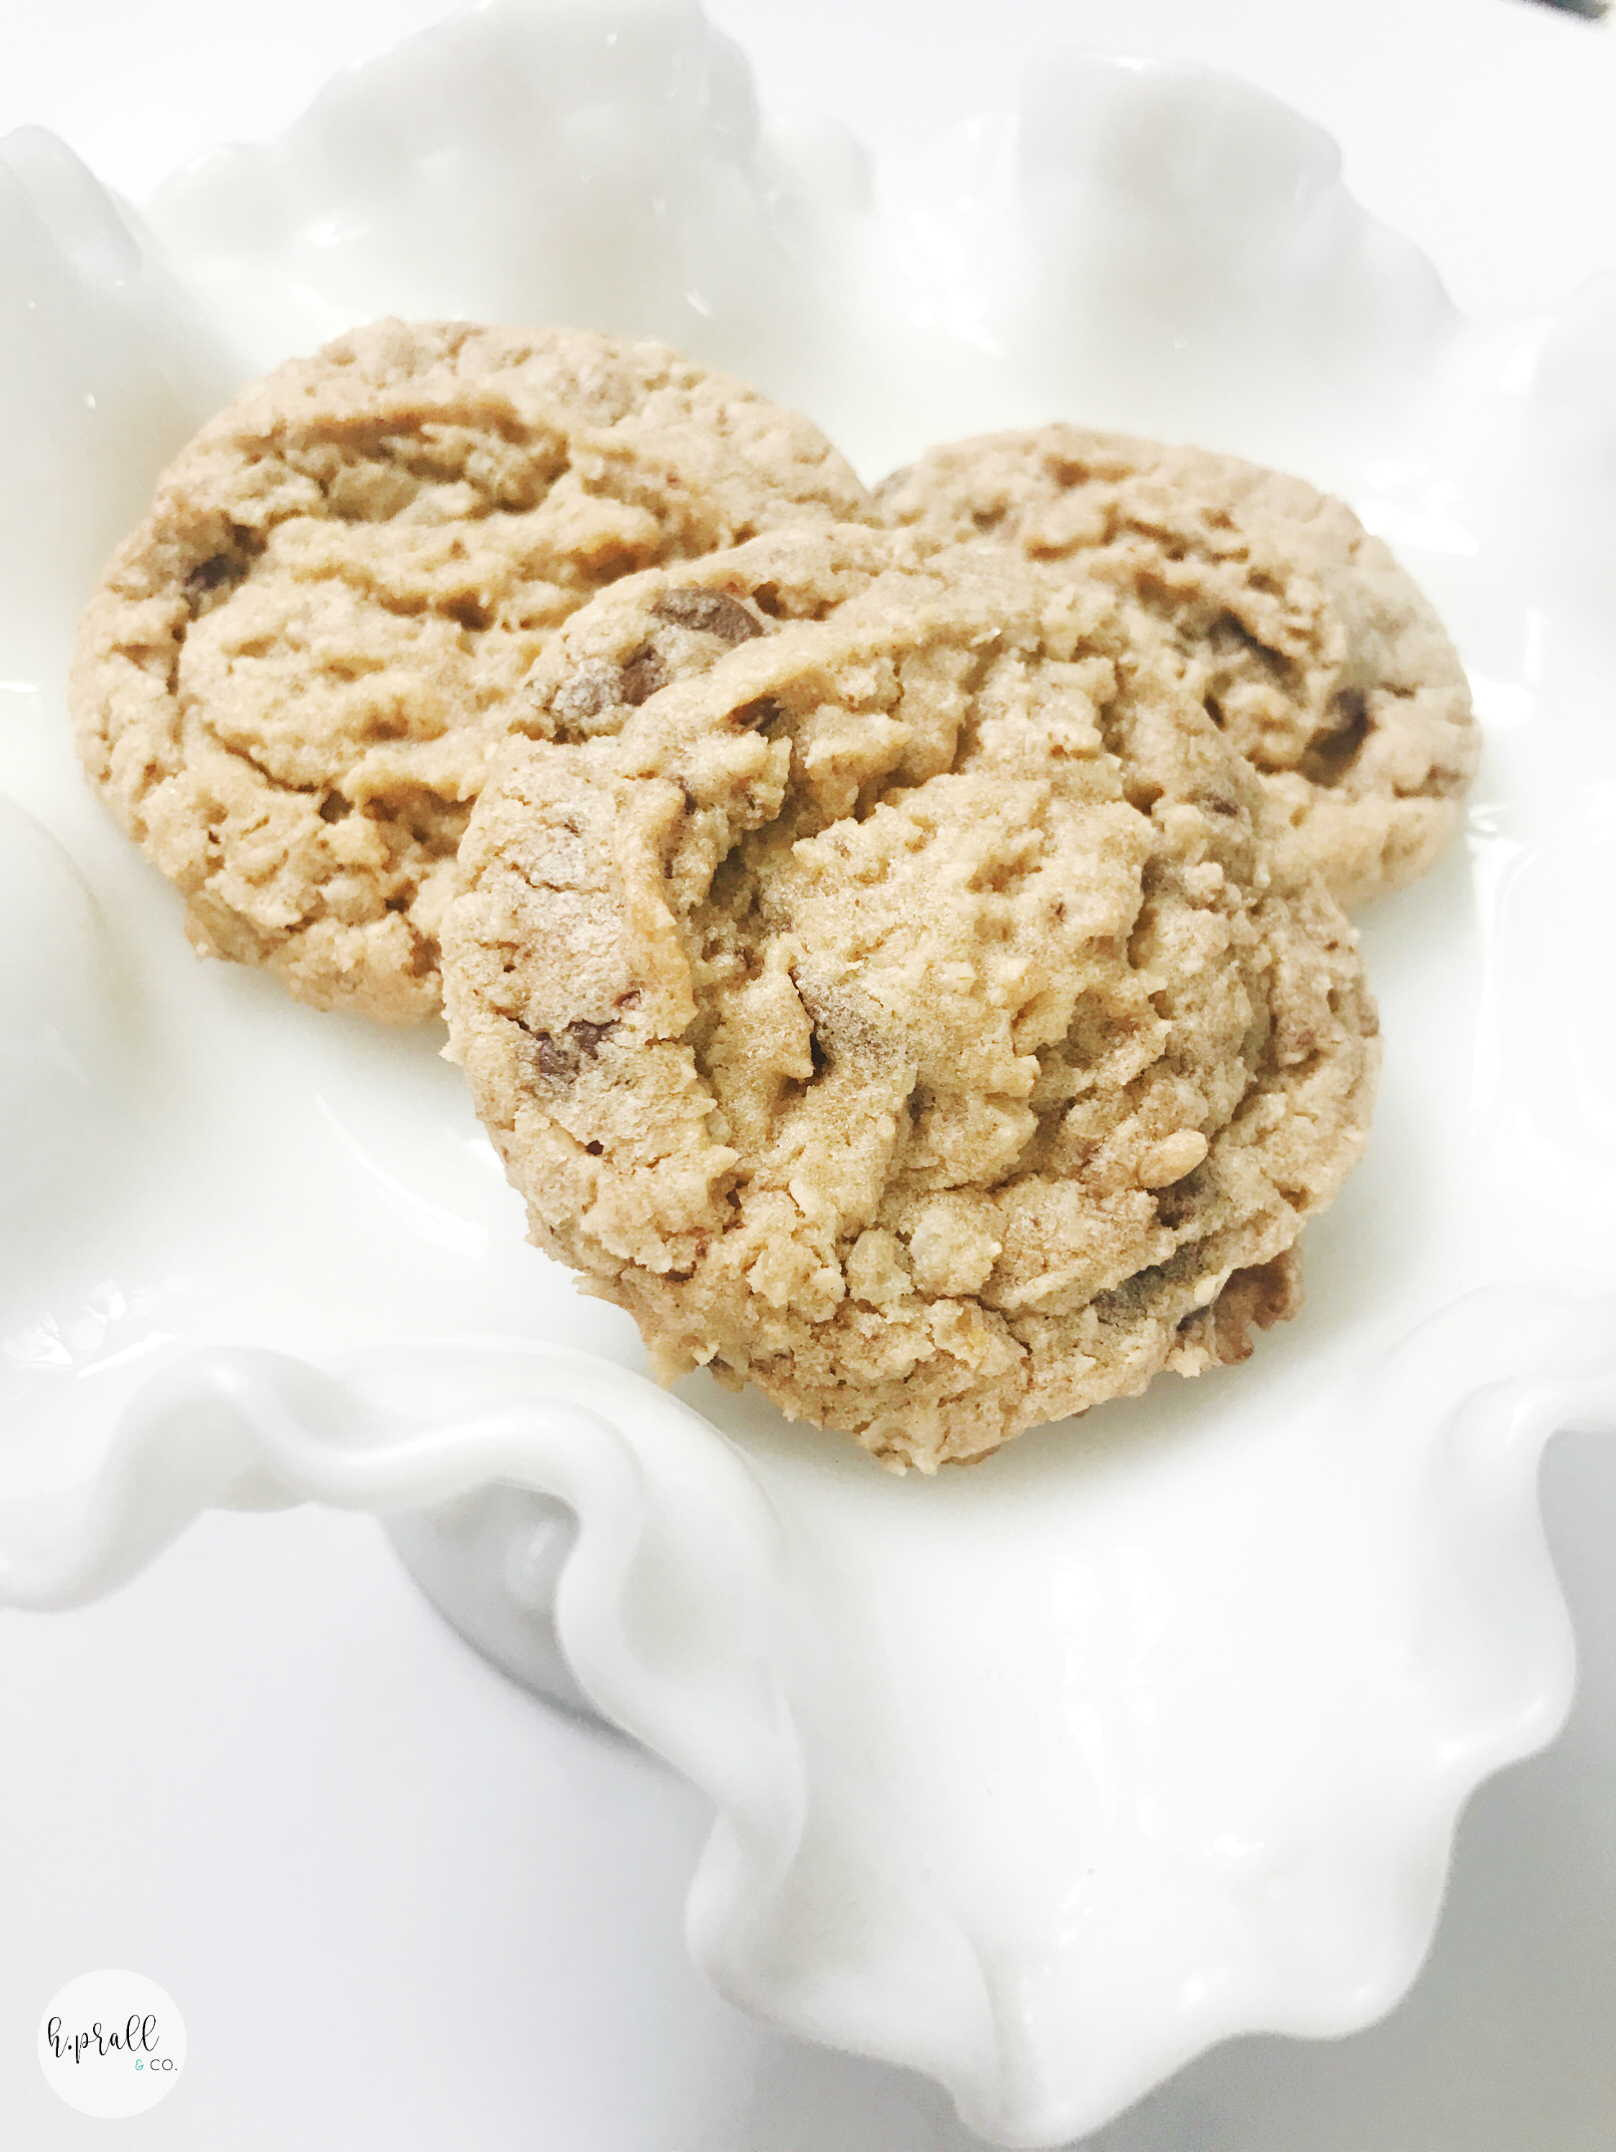 Freshly baked Oatmeal Chocolate Chip Cookies from  H.Prall & Co.